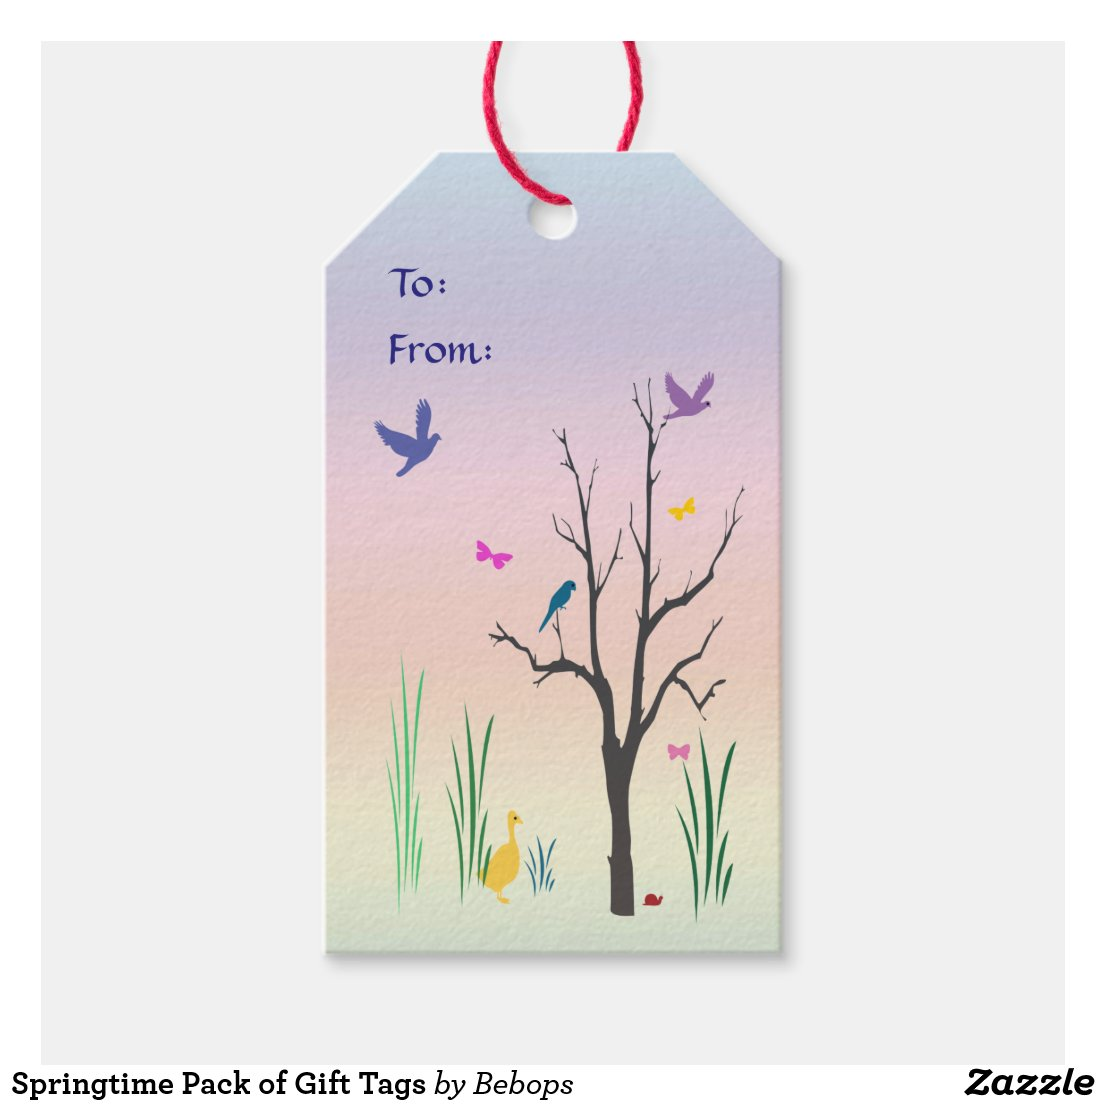 Springtime Pack of Gift Tags